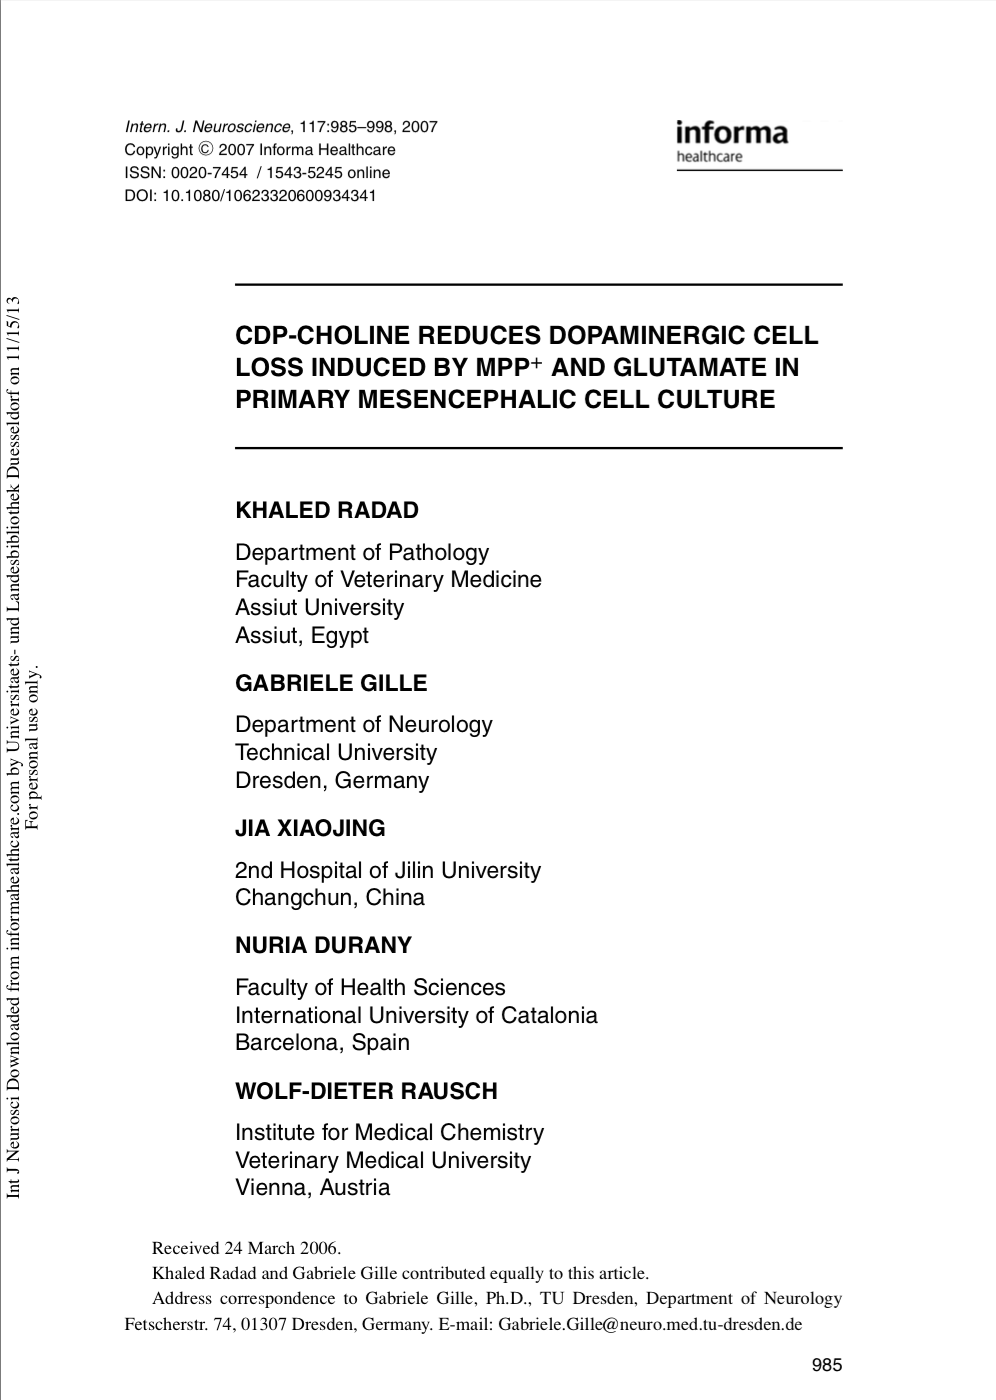 CDP-Choline Reduces Dopaminergic Cell Loss Induced by MPP+ and Glutamate In Primary Mesencephalic Cell Culture